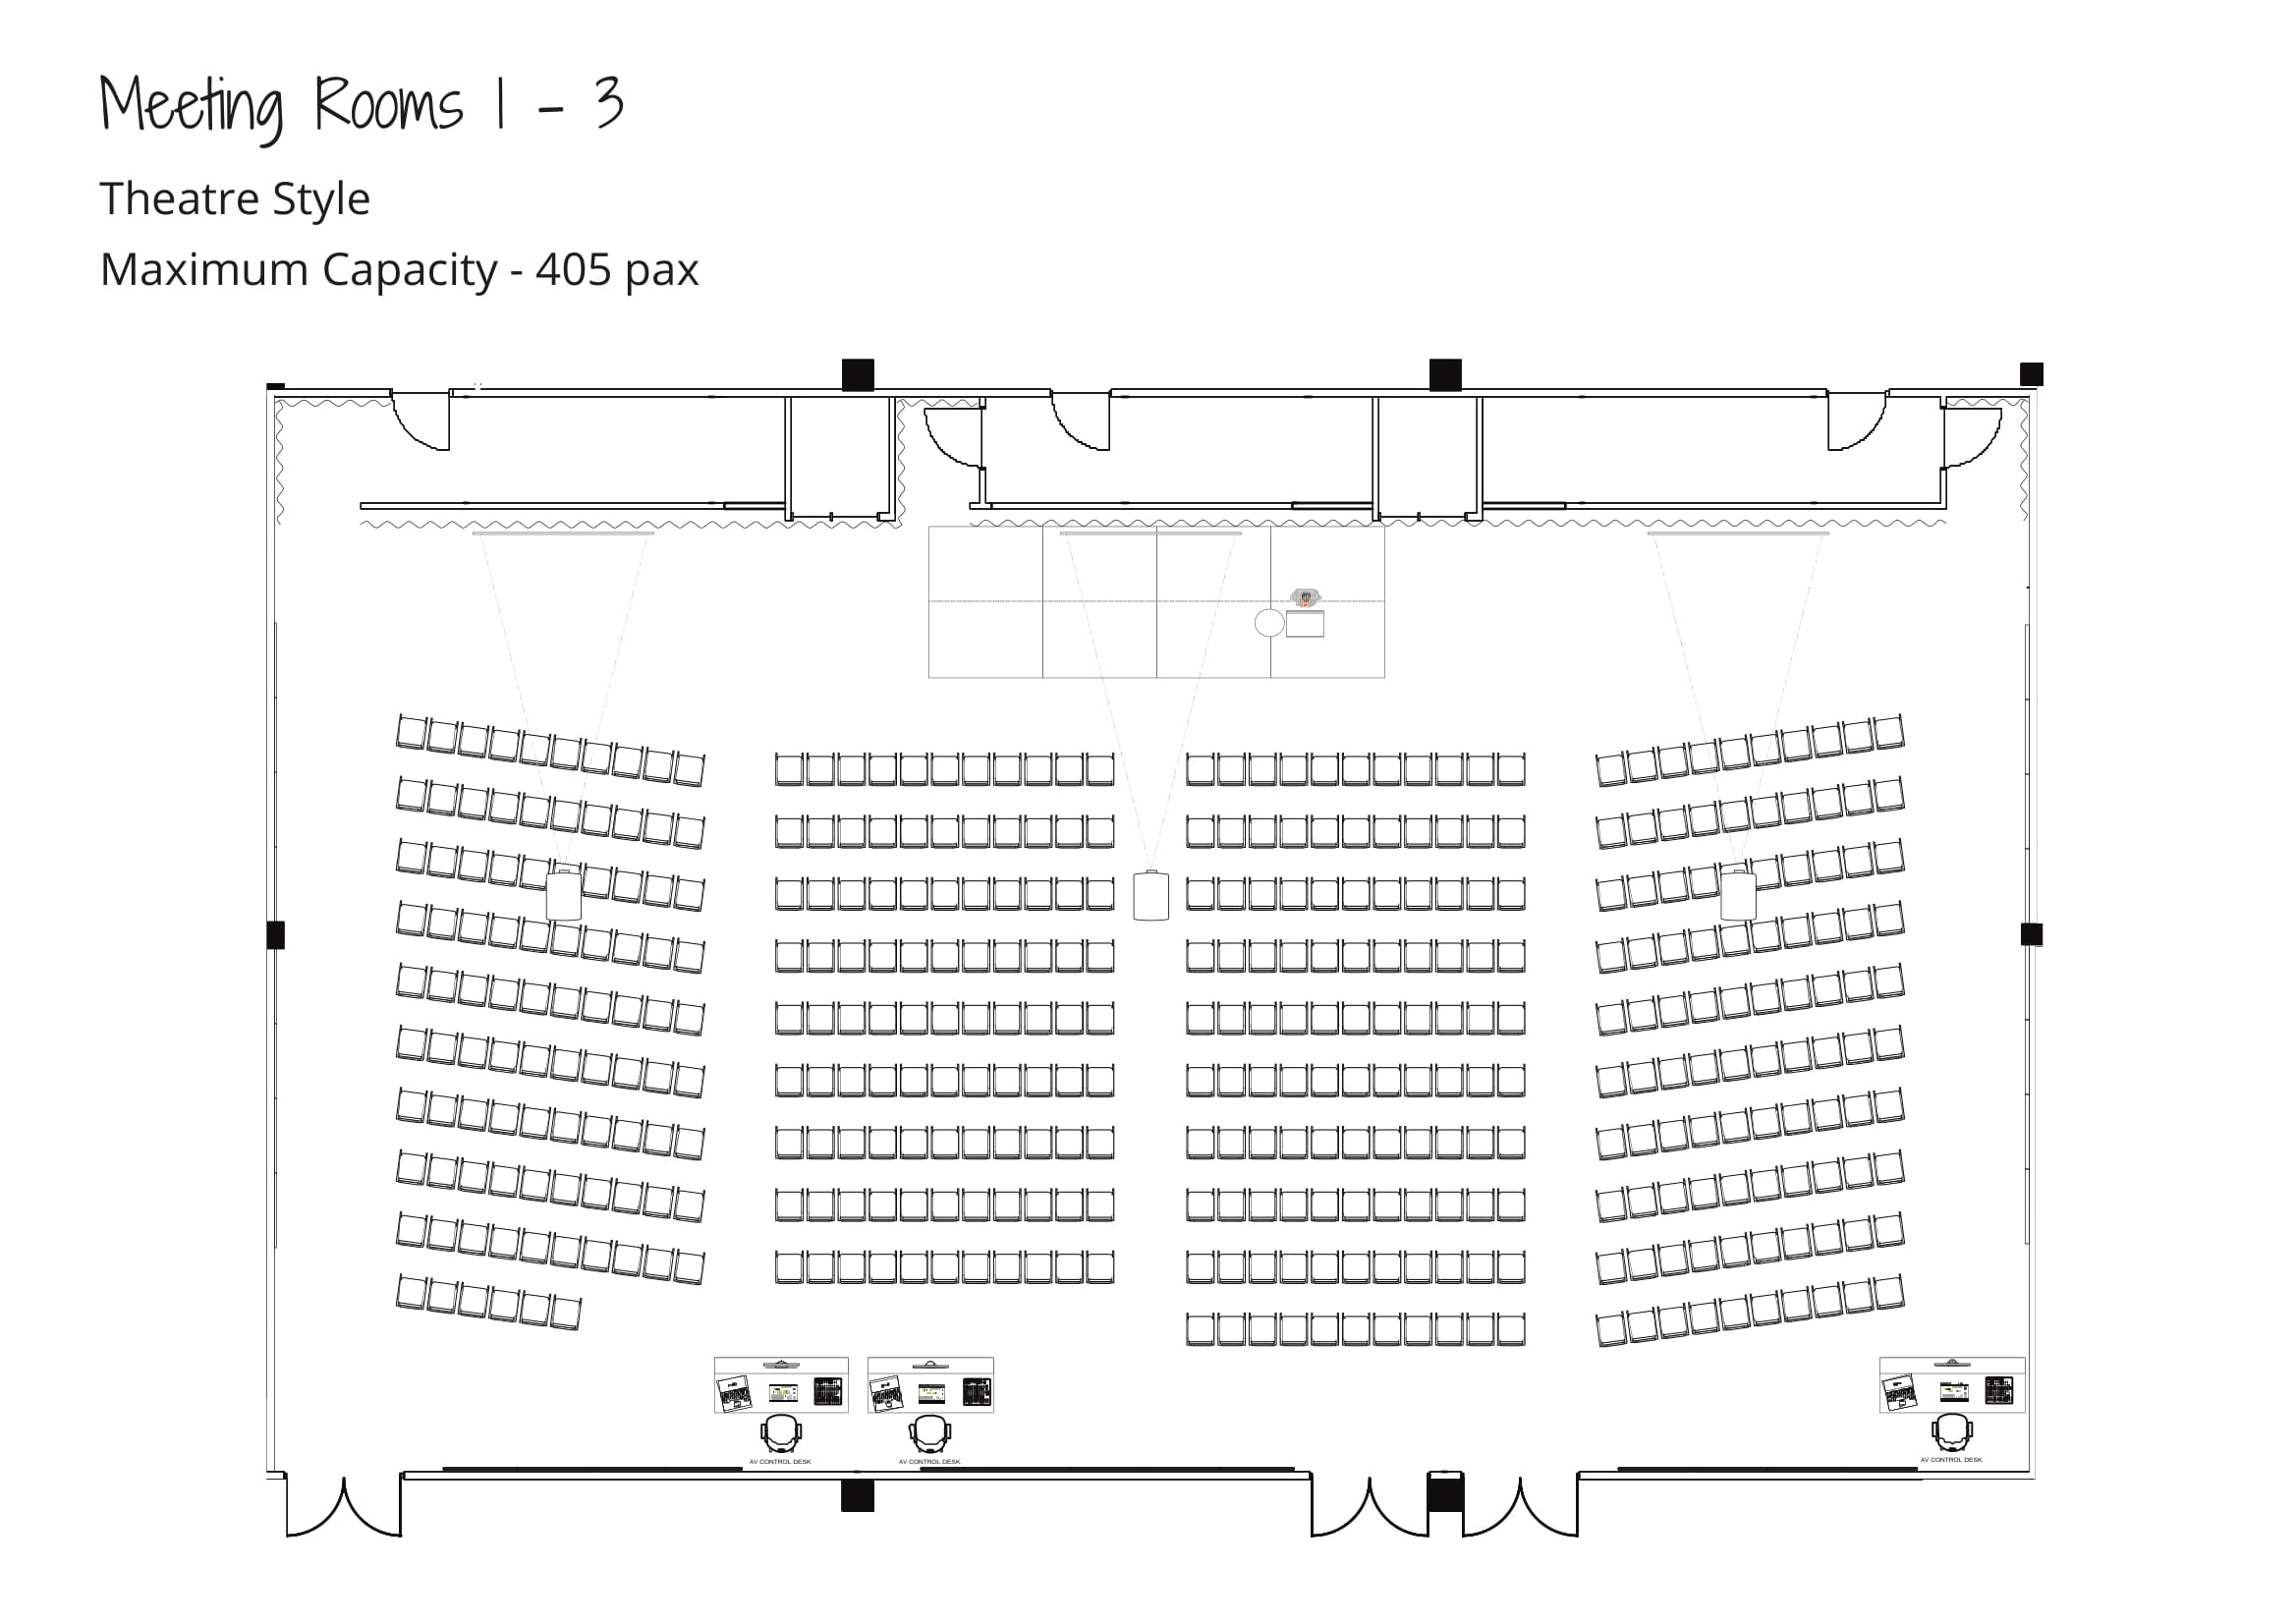 Level 2 Meeting Rooms - Maximum Capacity - Theatre Style - Meeting Rooms 1-3 Combined-1